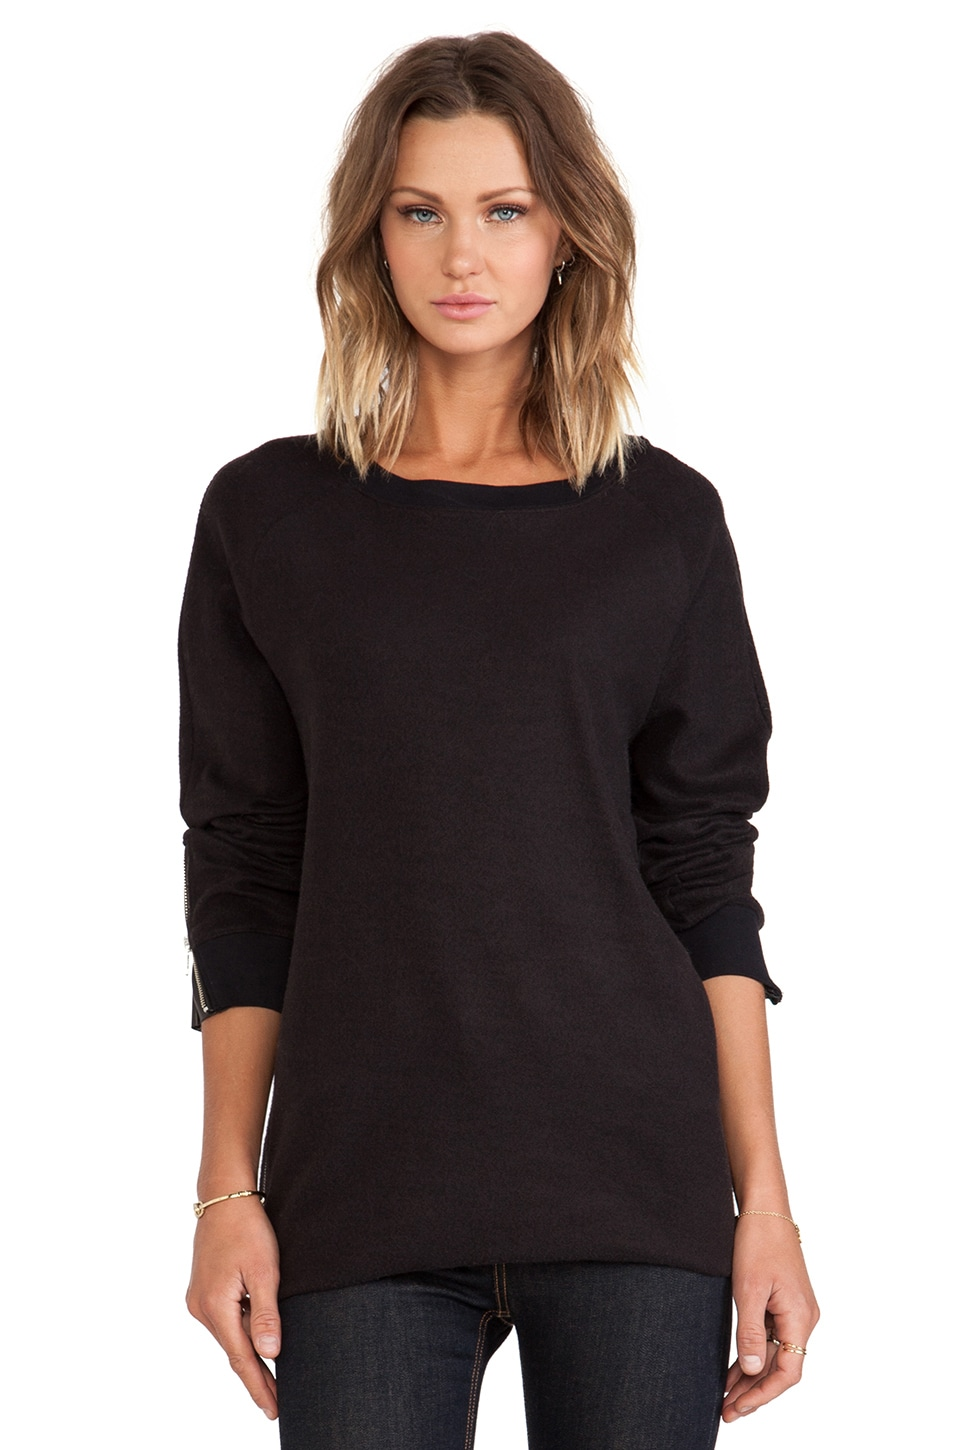 BLK DNM Sweatshirt 14 in Black